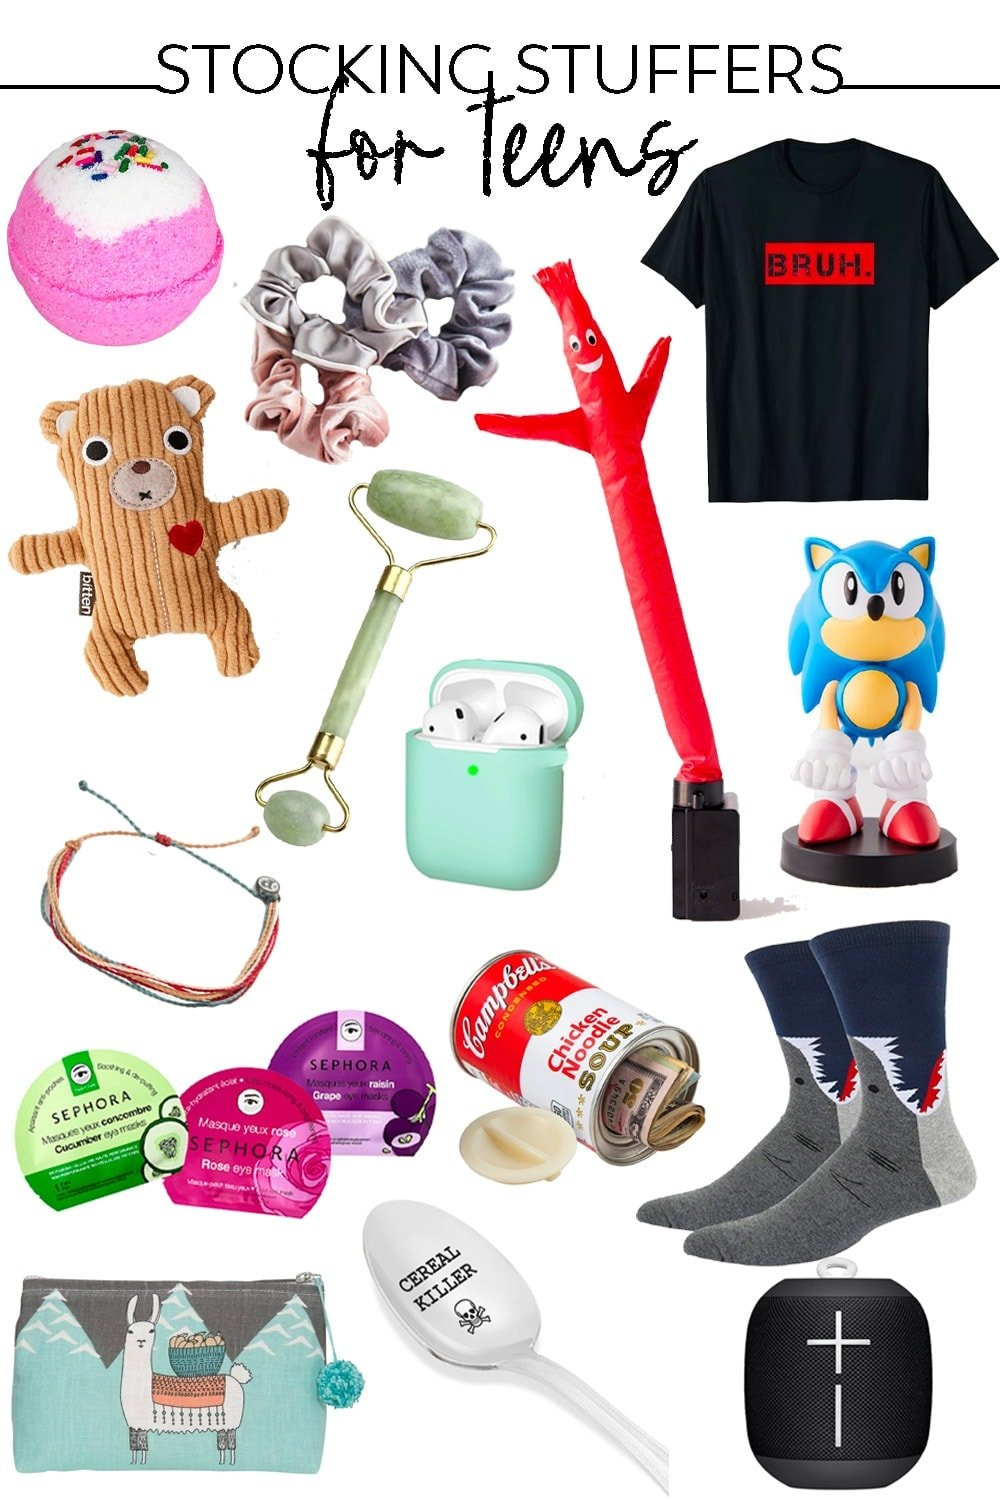 stocking stuffers for teens collage of images pinterest friendly